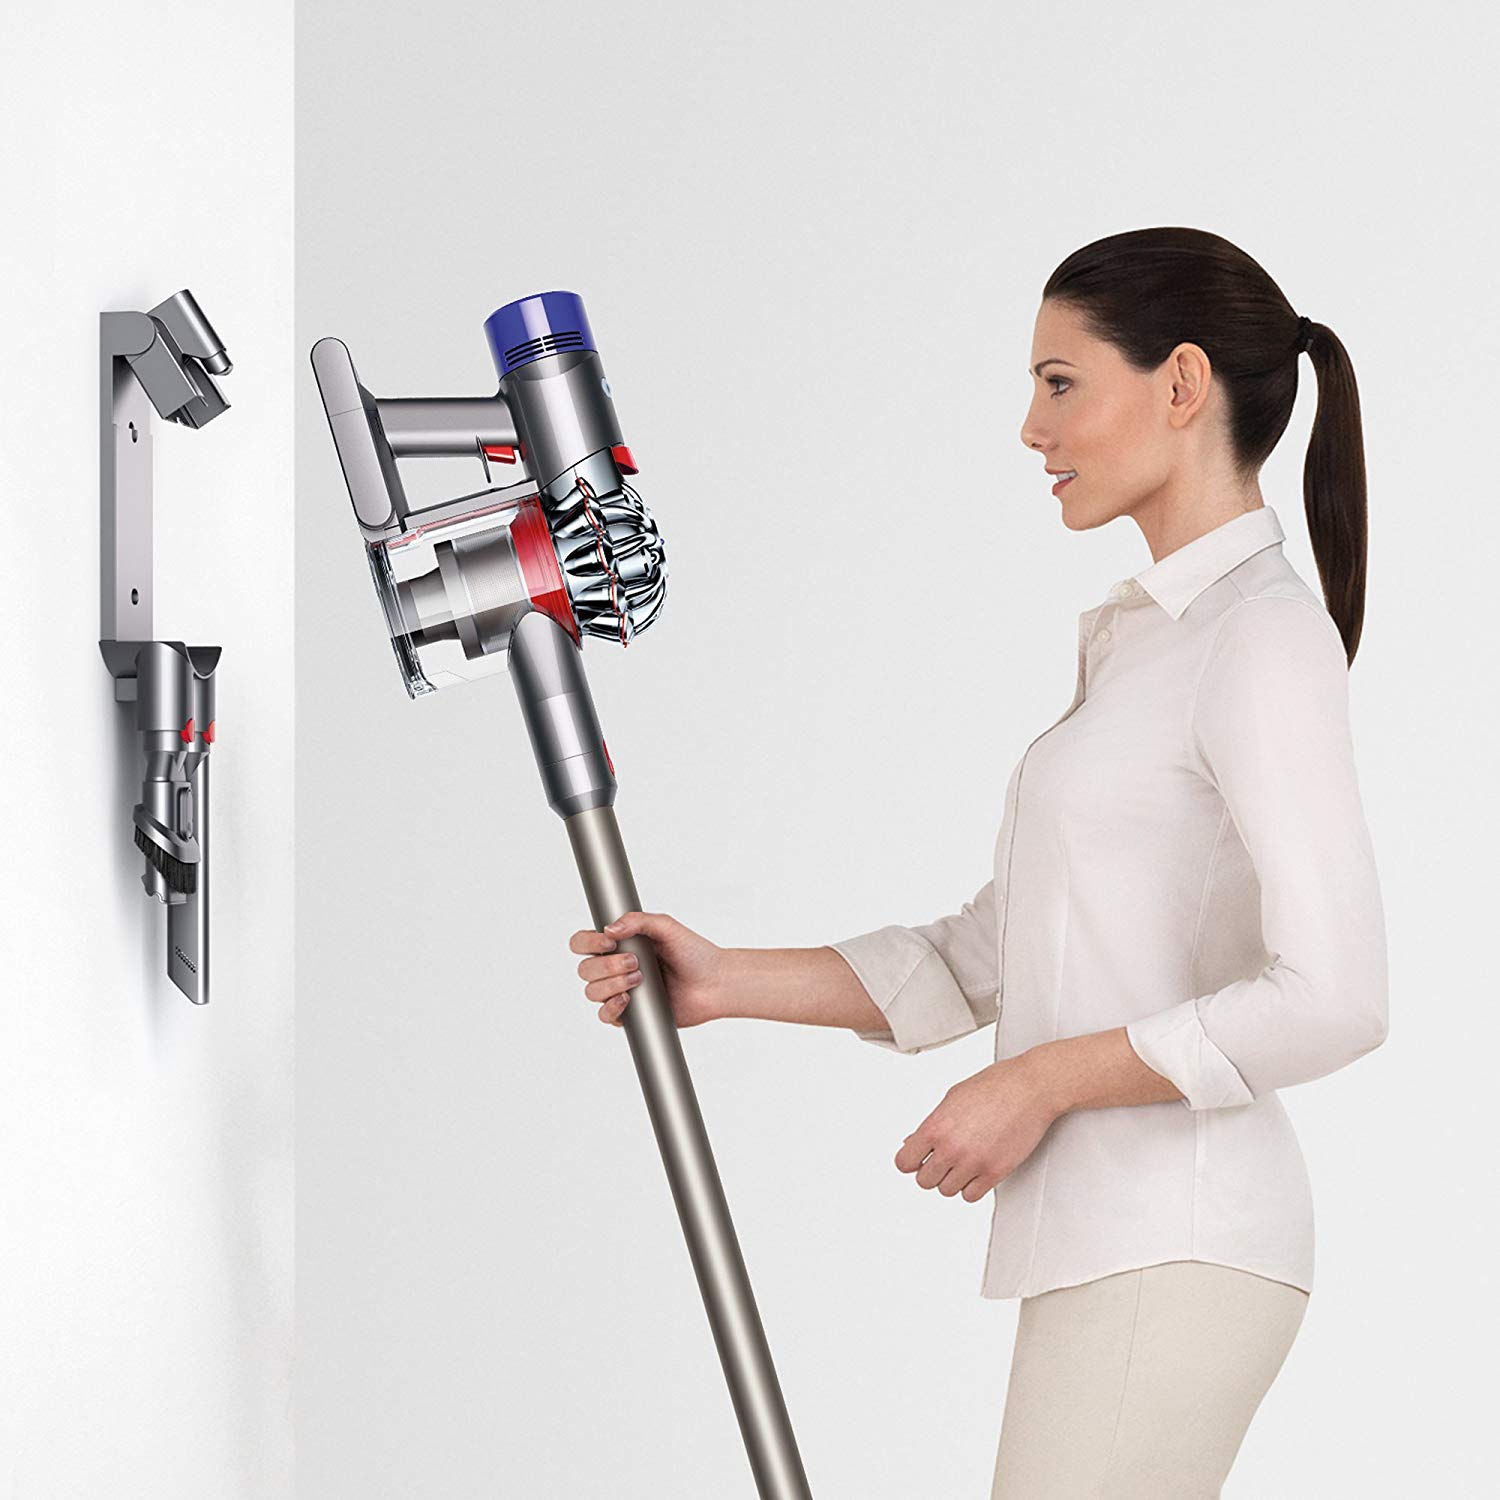 Dyson-V7-Animal-Cordless-Stick-Vacuum-Cleaner-Wall-Mount